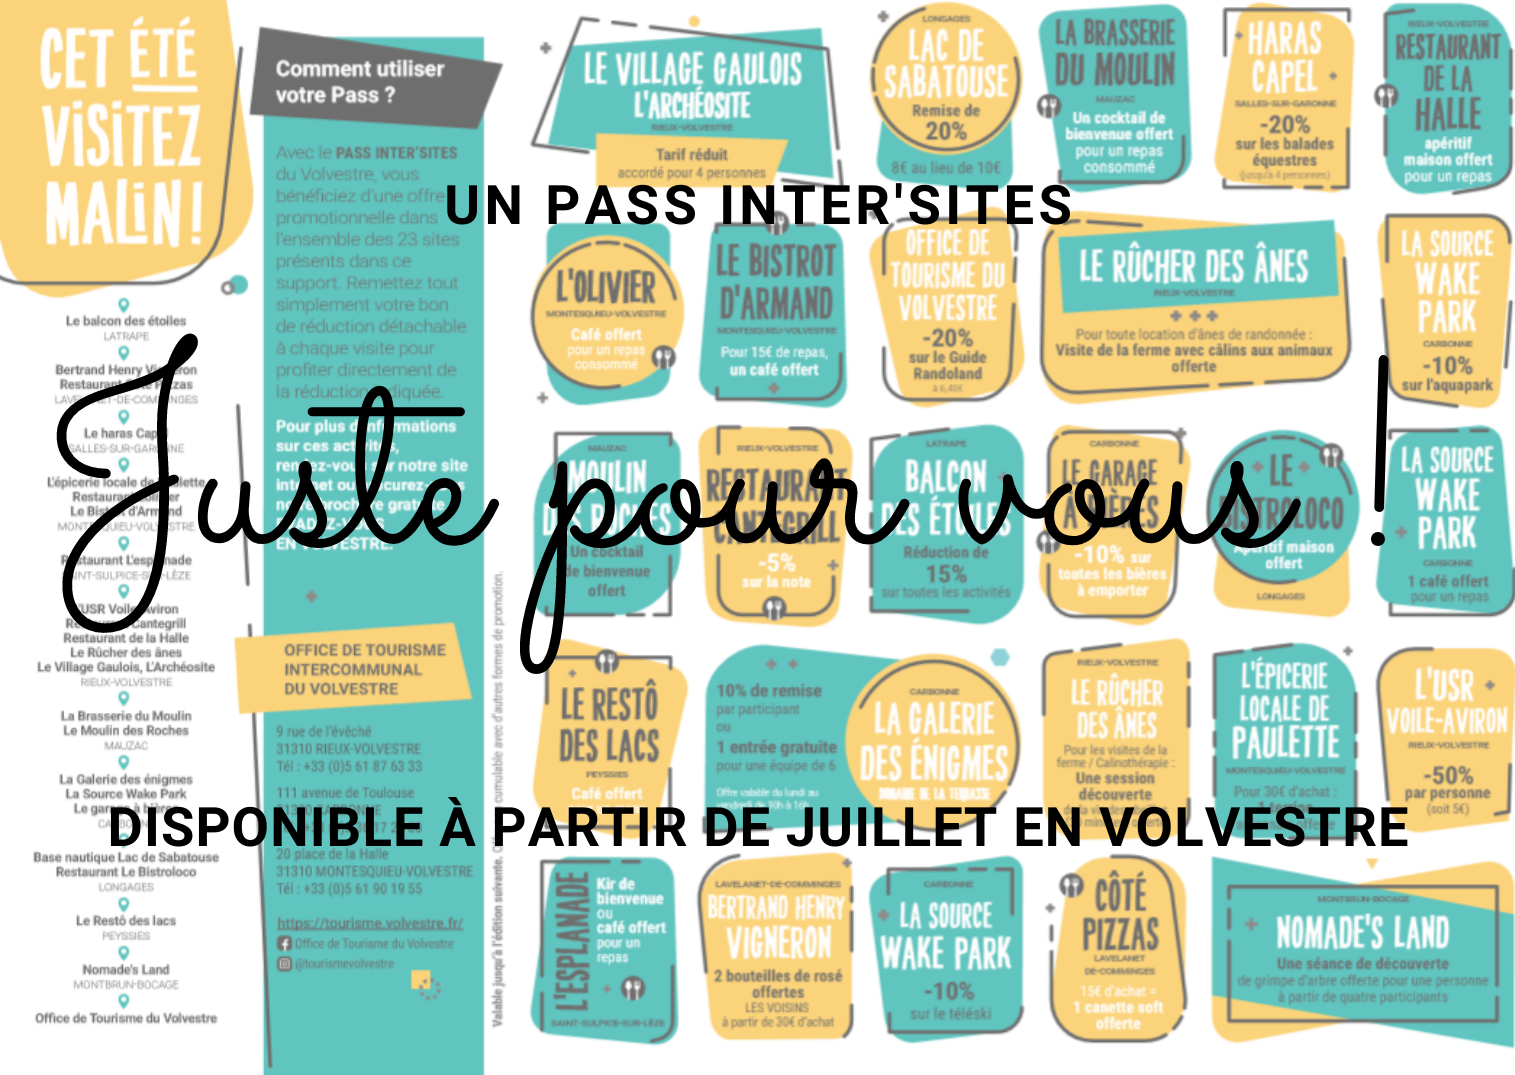 PASS INTER'SITES Volvestre